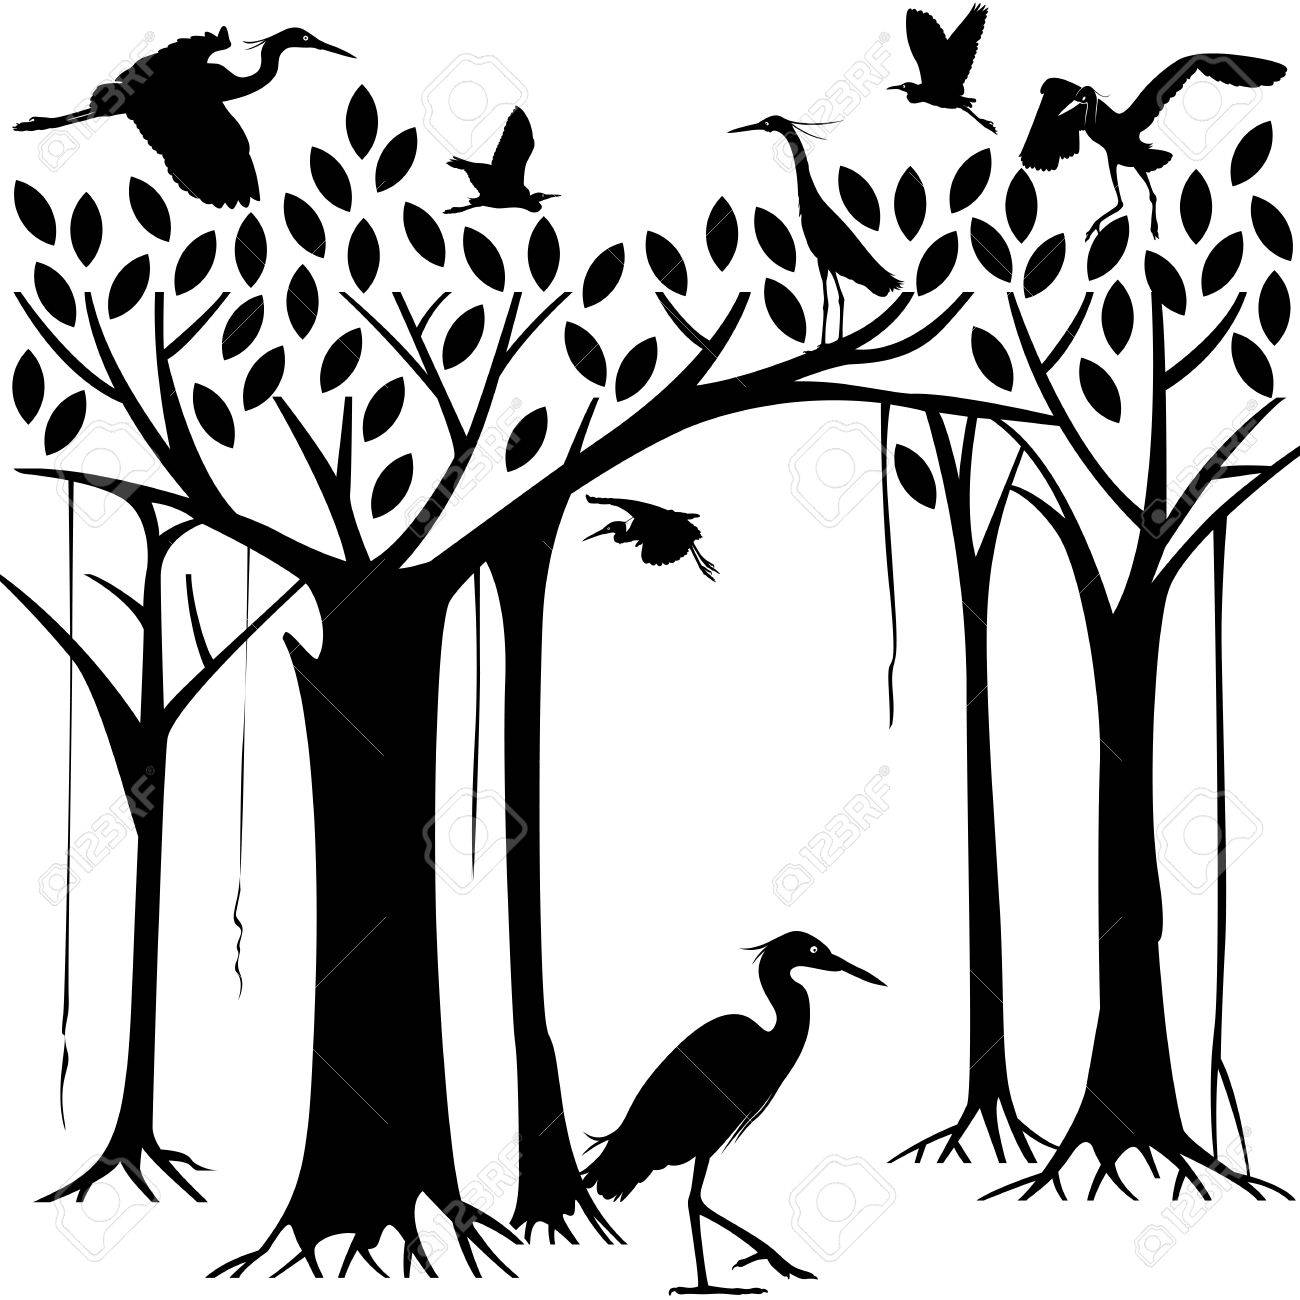 Egrets and banyan tree forest in Silhouette illustration Stock Vector - 26045826